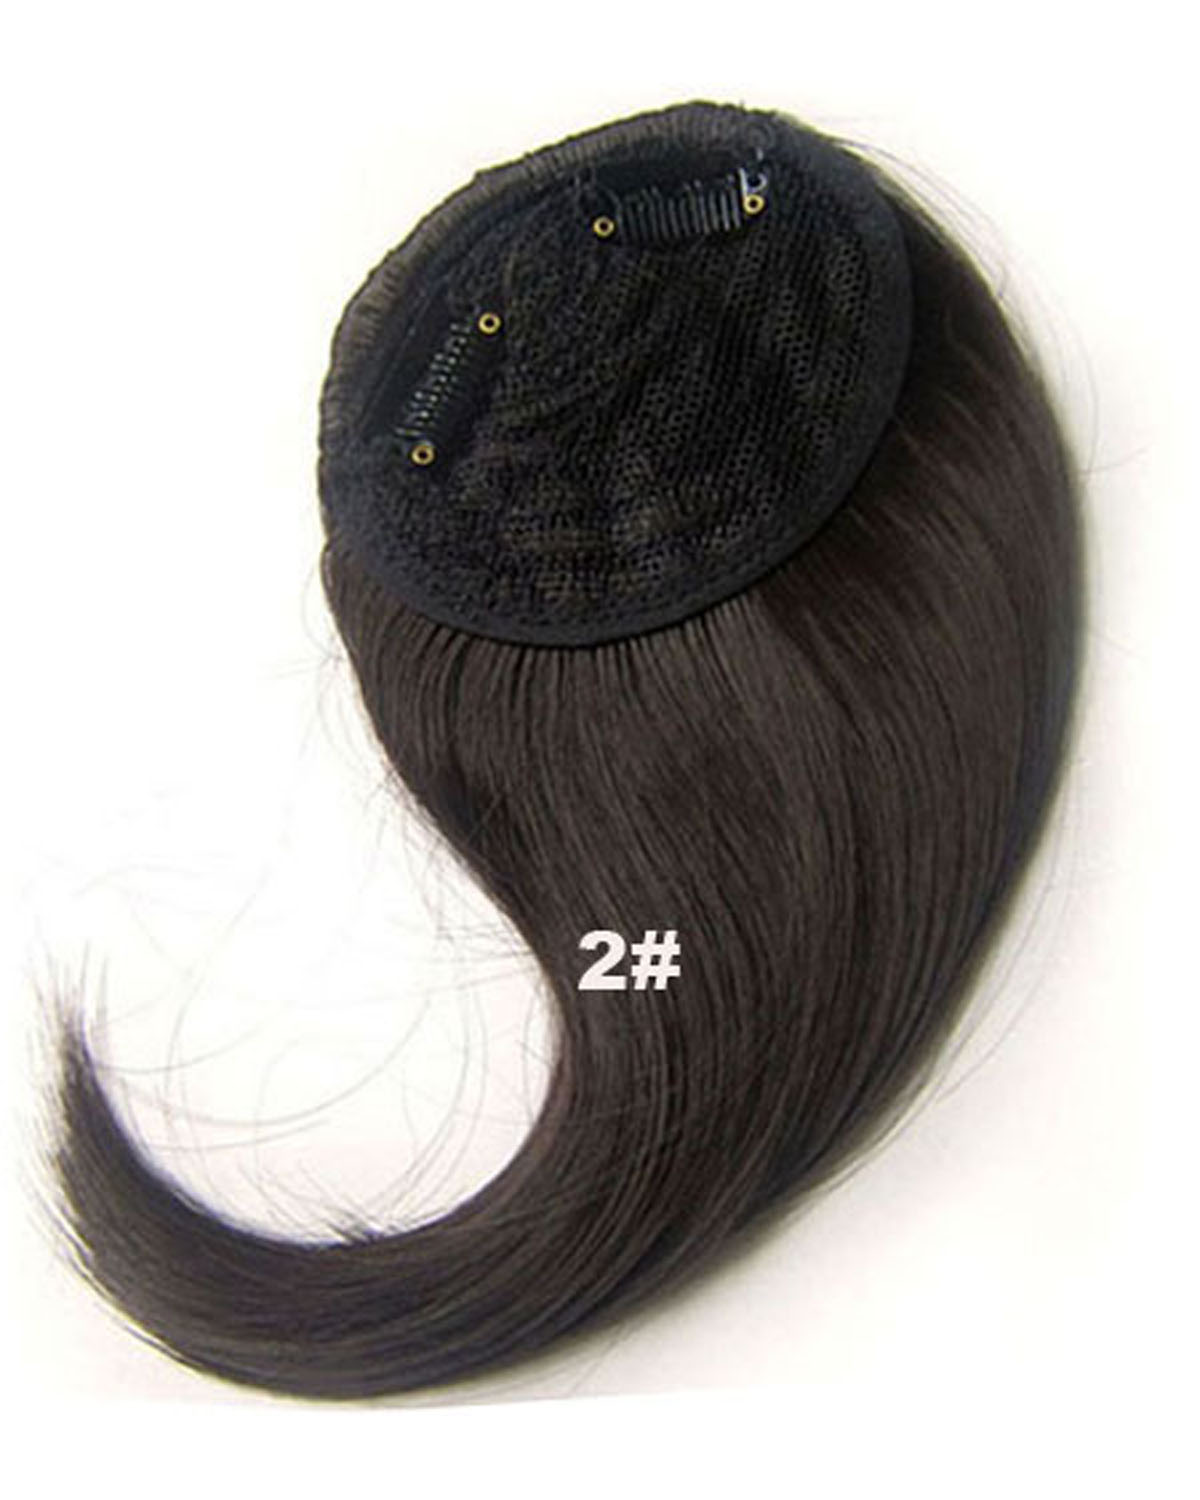 Girls Glamour Straight Short Bangs Clip in Synthetic Hair Extension Fringe Bangs Hairpiece2#